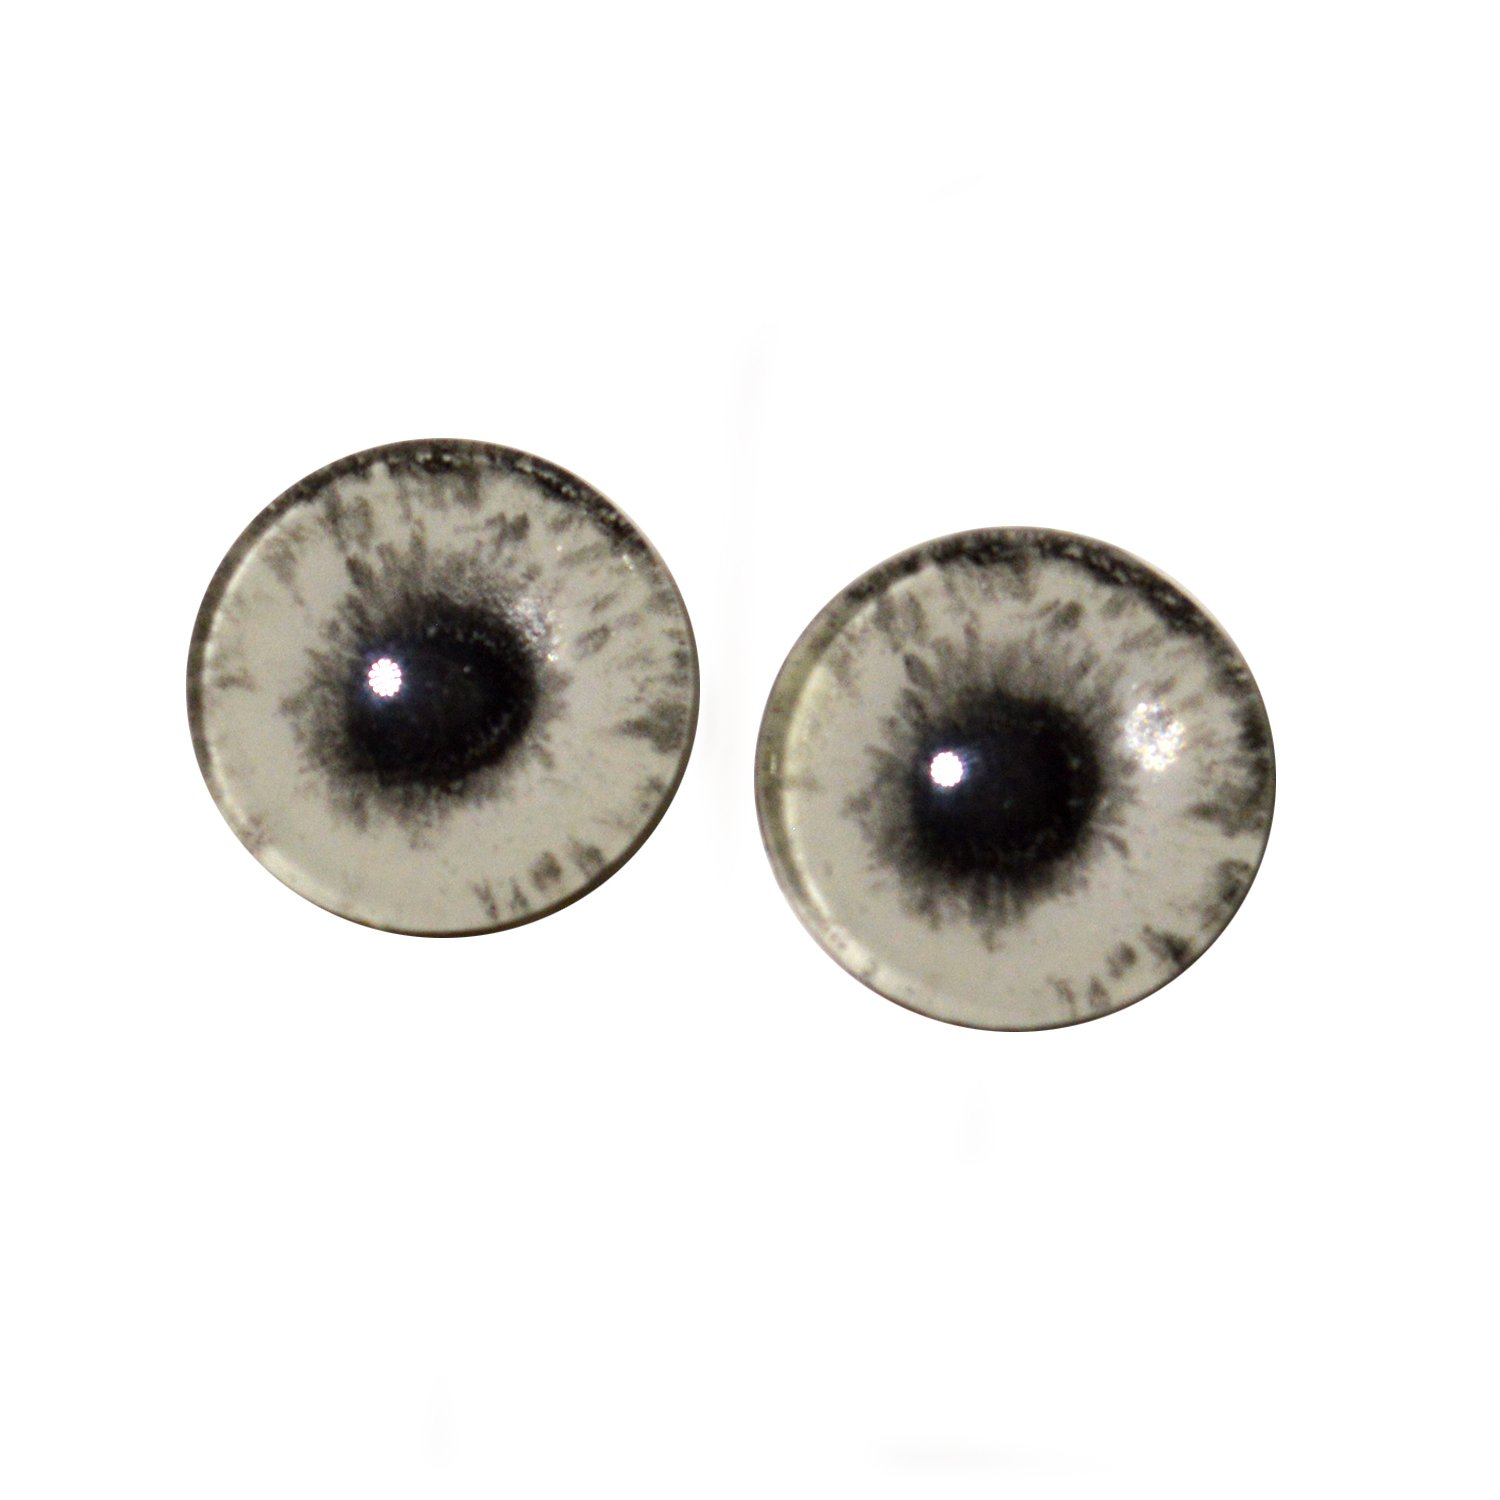 16mm Glow in the Dark Eyes - Human Zombie Glass Eyes Pair - Peel and Stick Adhesive Backing - For Art Dolls, Jewelry Making, Taxidermy, Scrapbooking, and More Megan' s Beaded Designs HW_8554451F